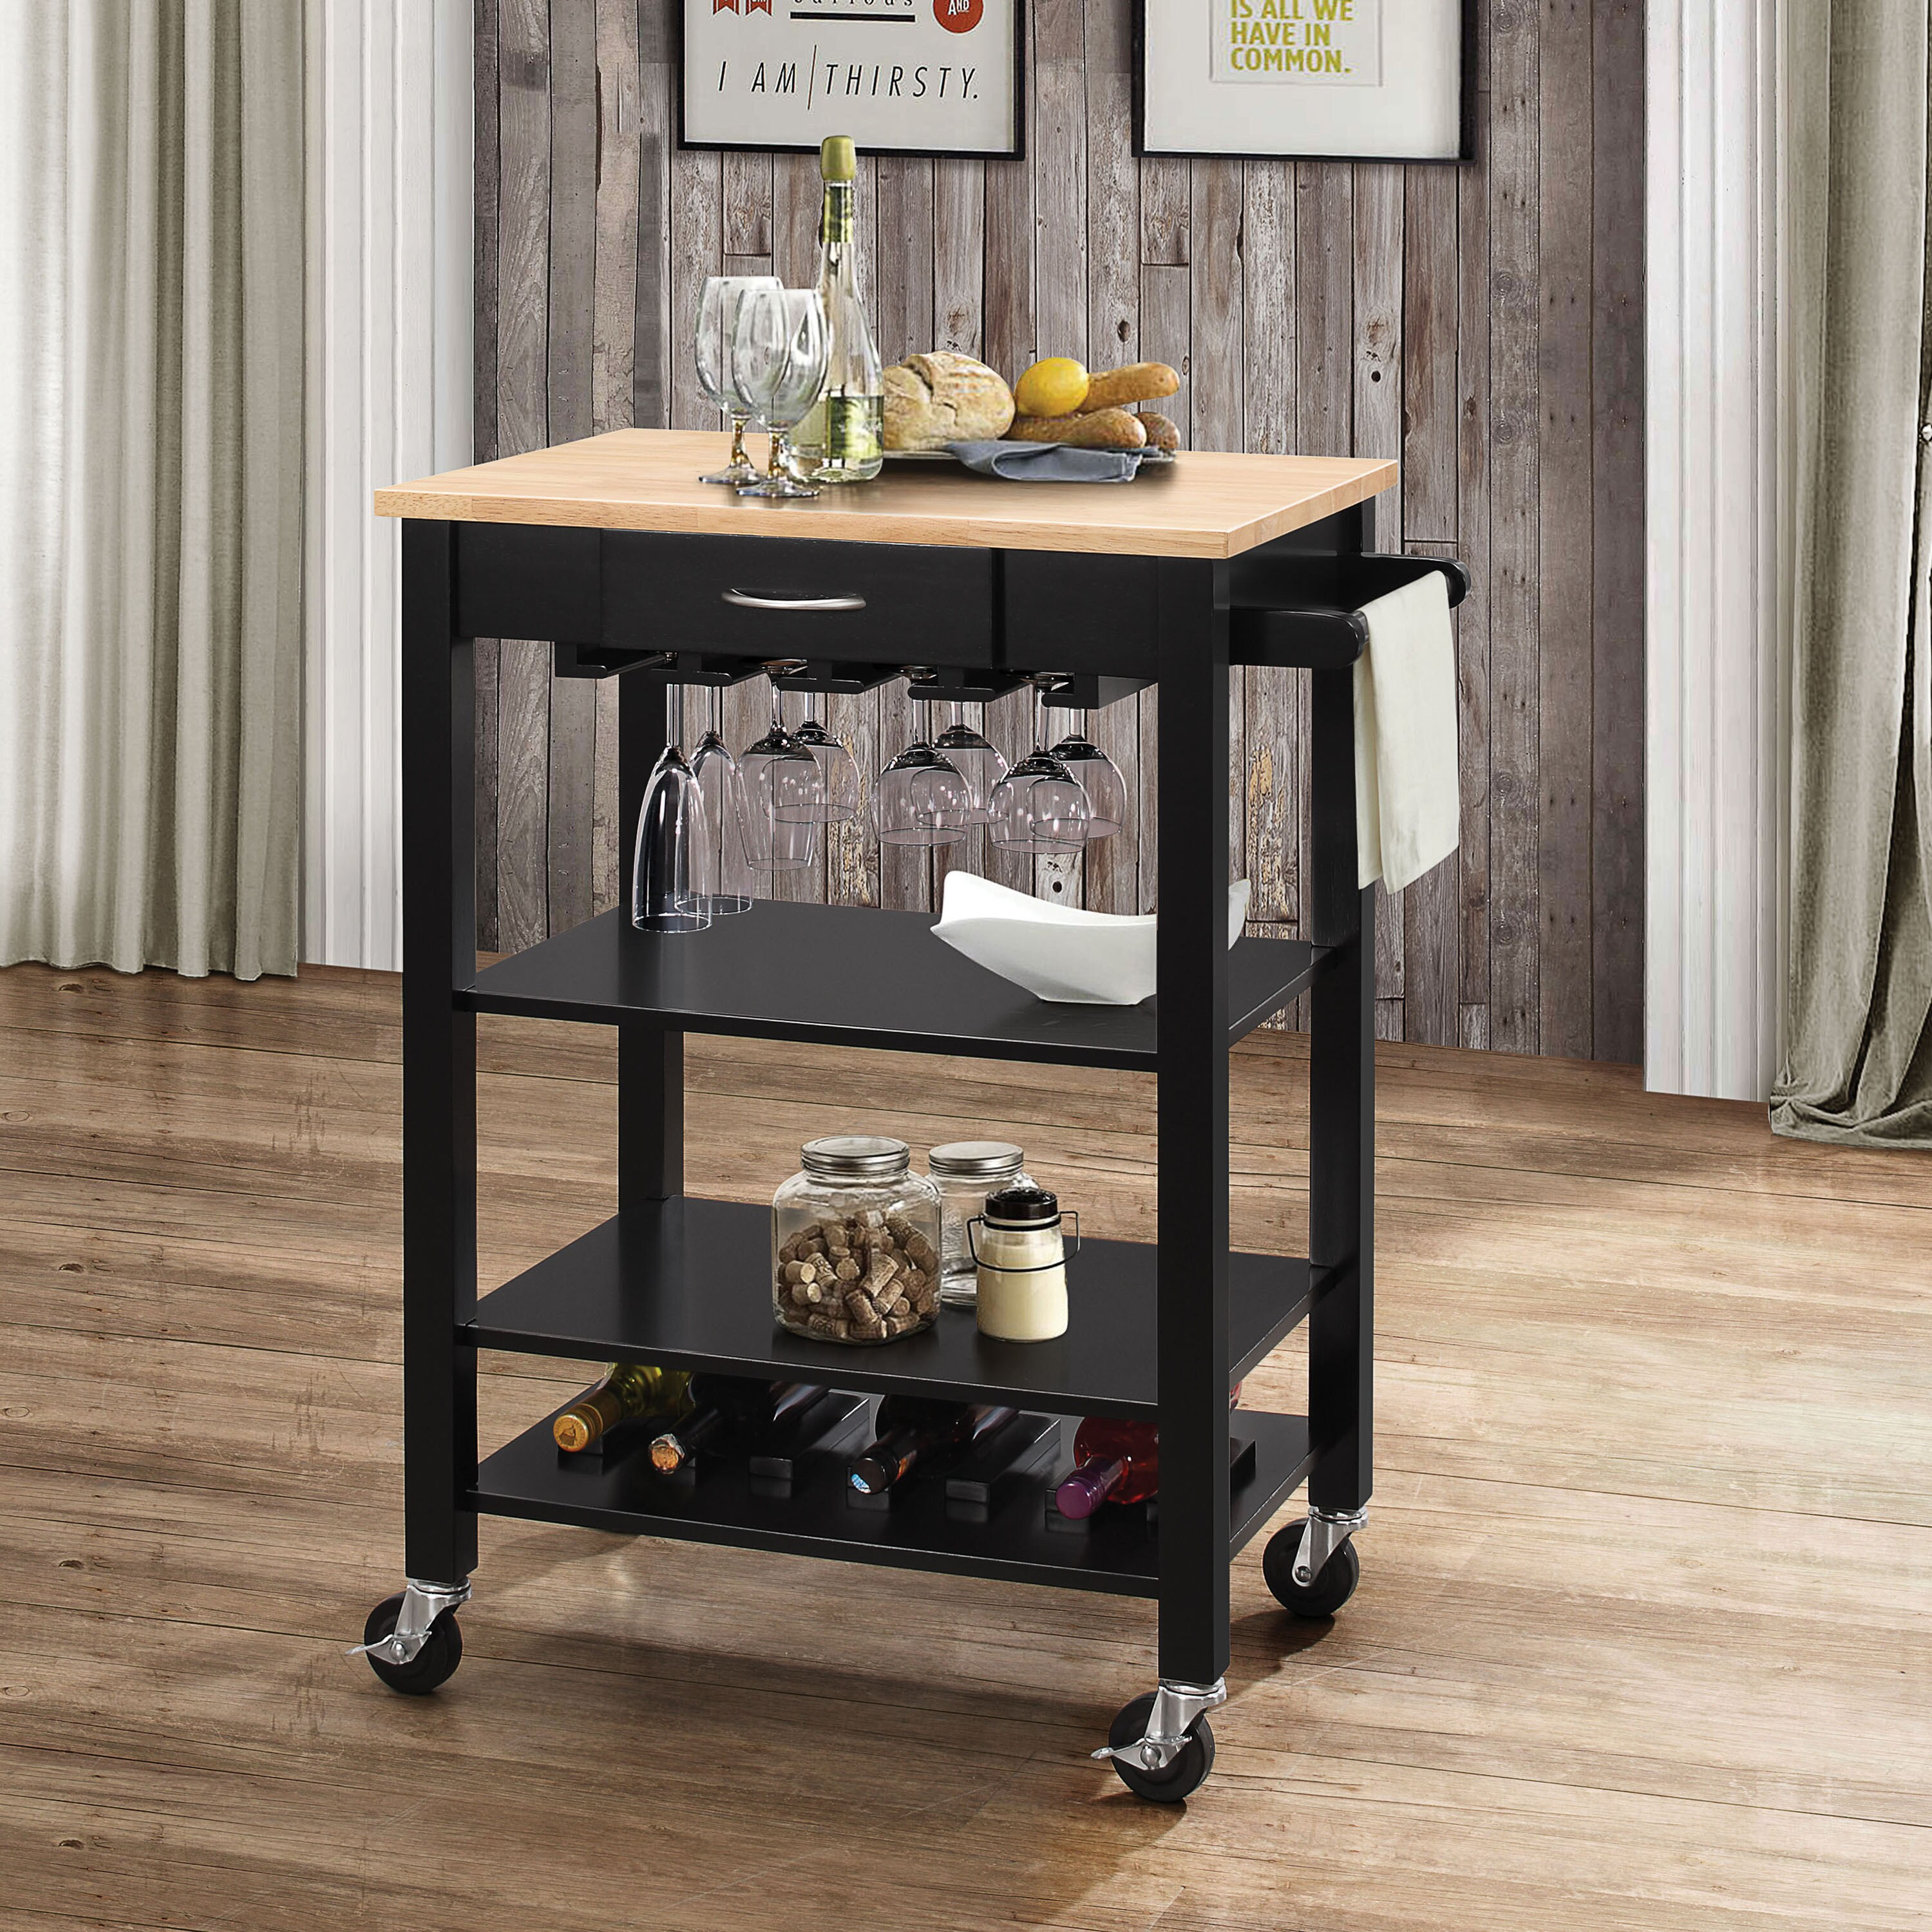 Acme Furniture Ottawa Natural and Black Kitchen Cart - Free Shipping ...